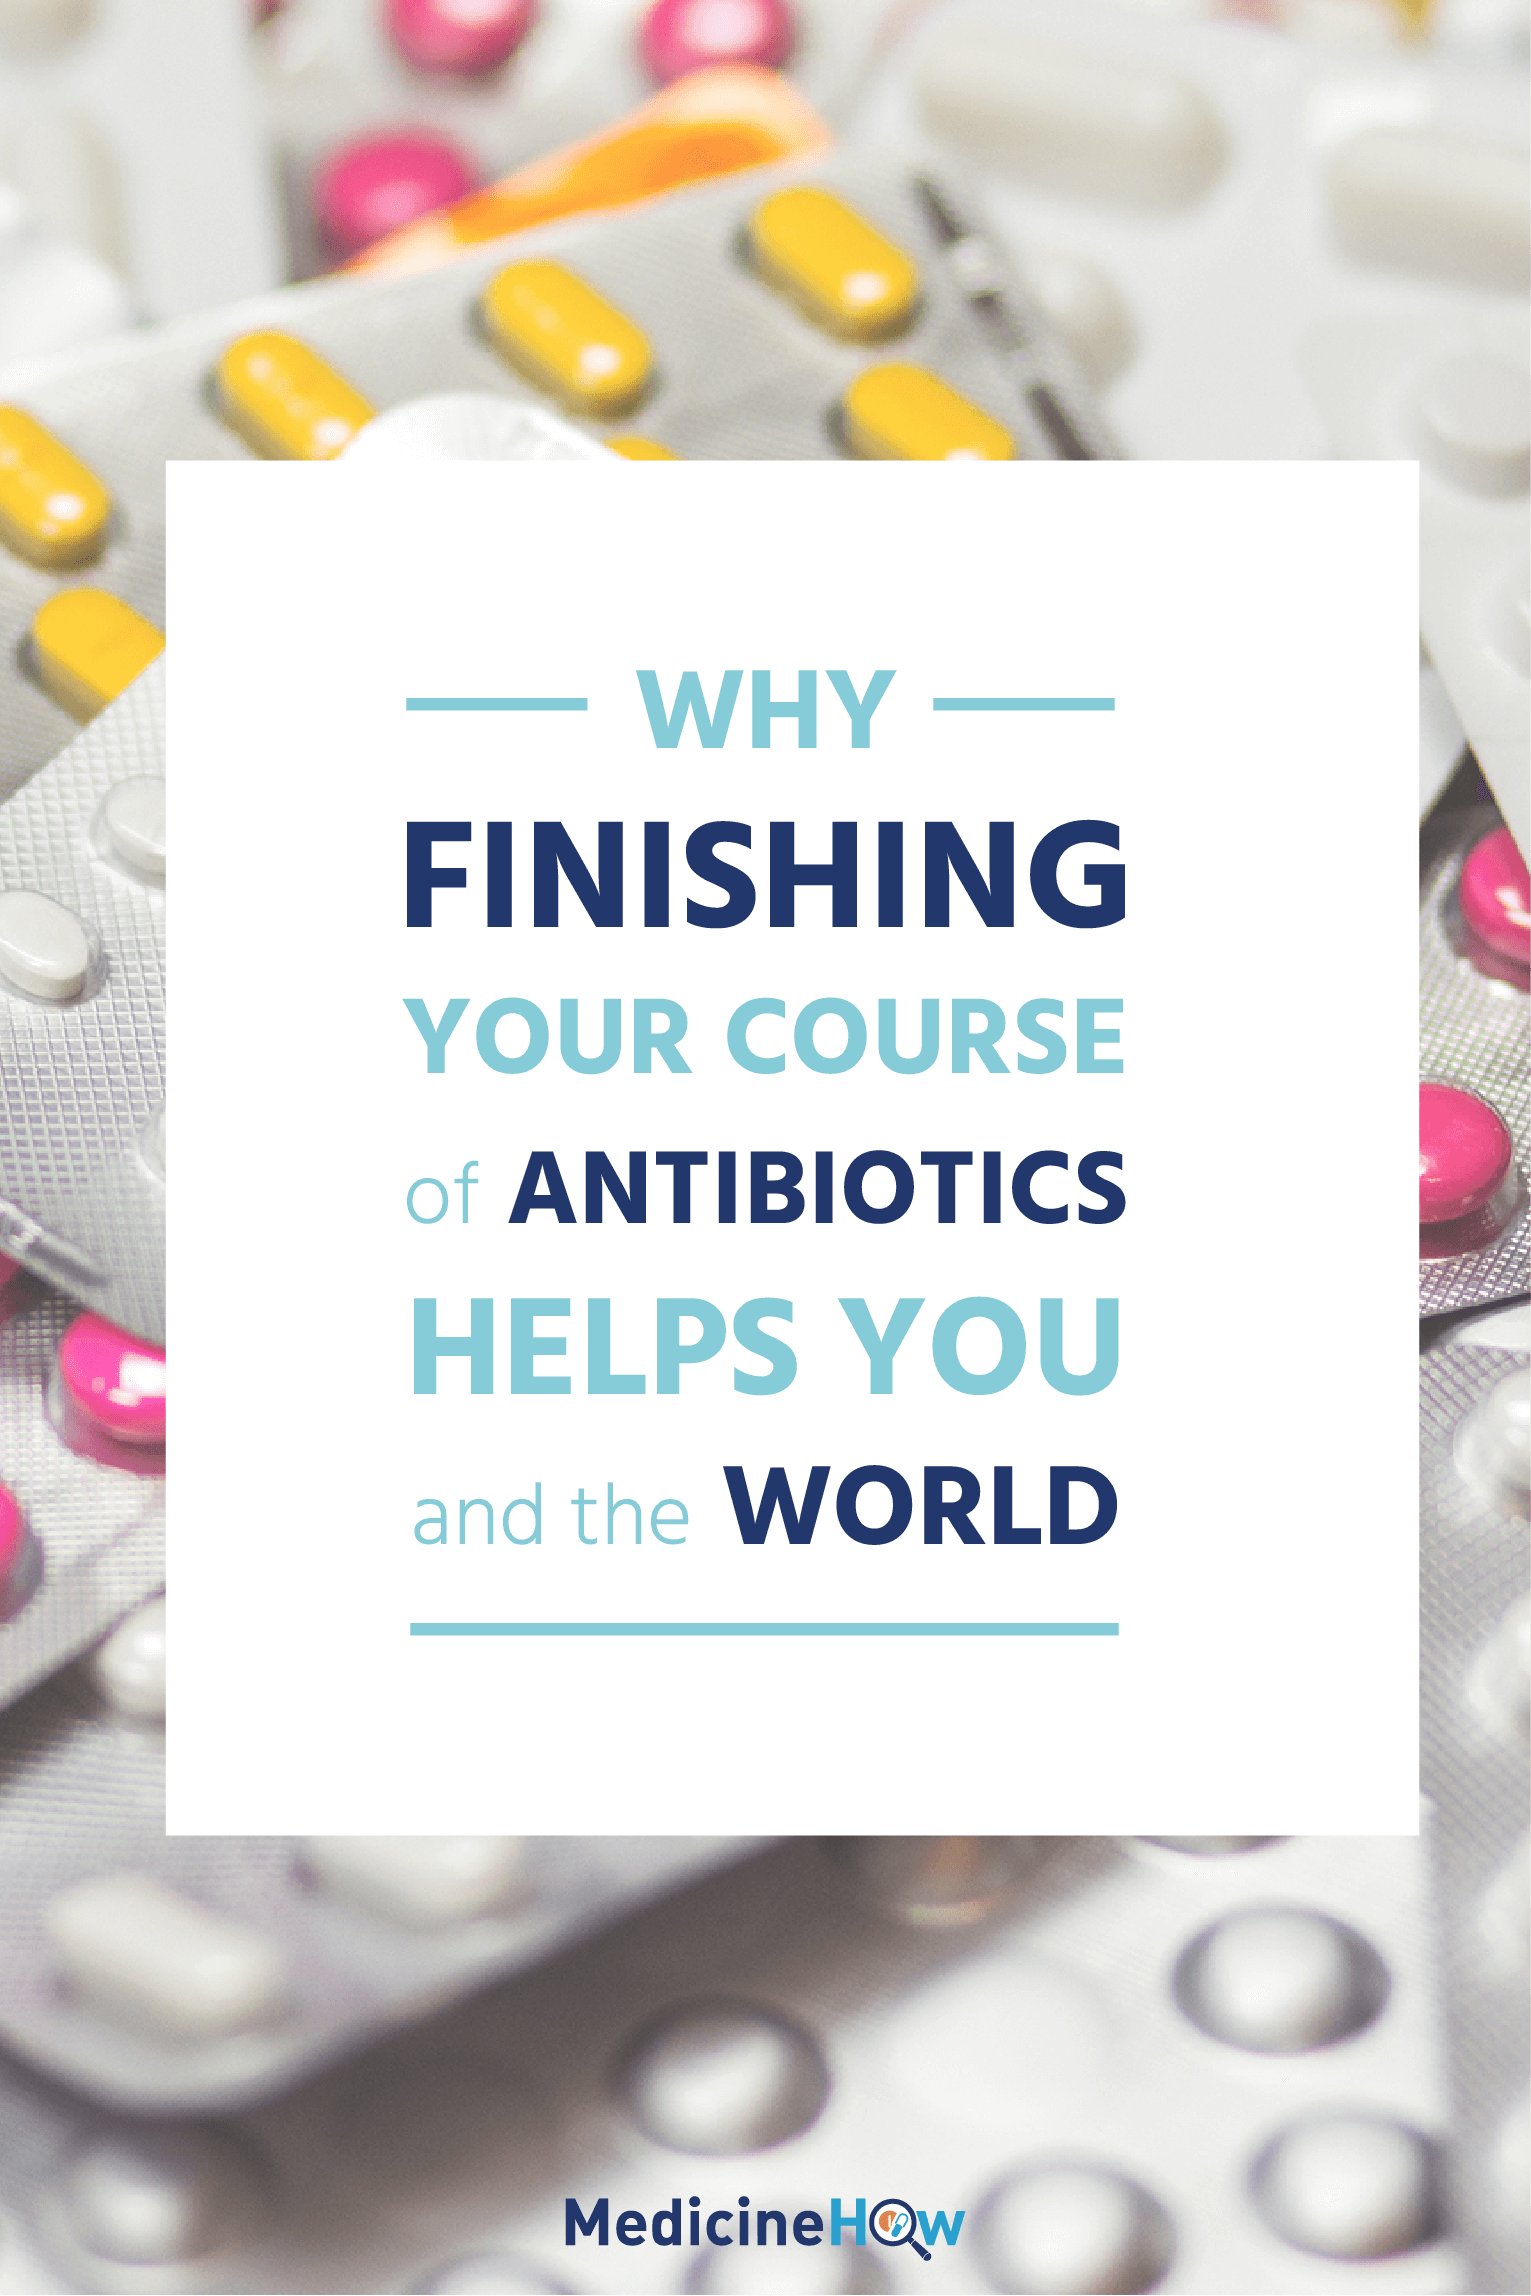 Why you should finish the course of antibiotics | Have you ever wondered just why we are told to finish the course of antibiotics? Turns out there is a valid reason, more than one in fact. Click through to read more about why.